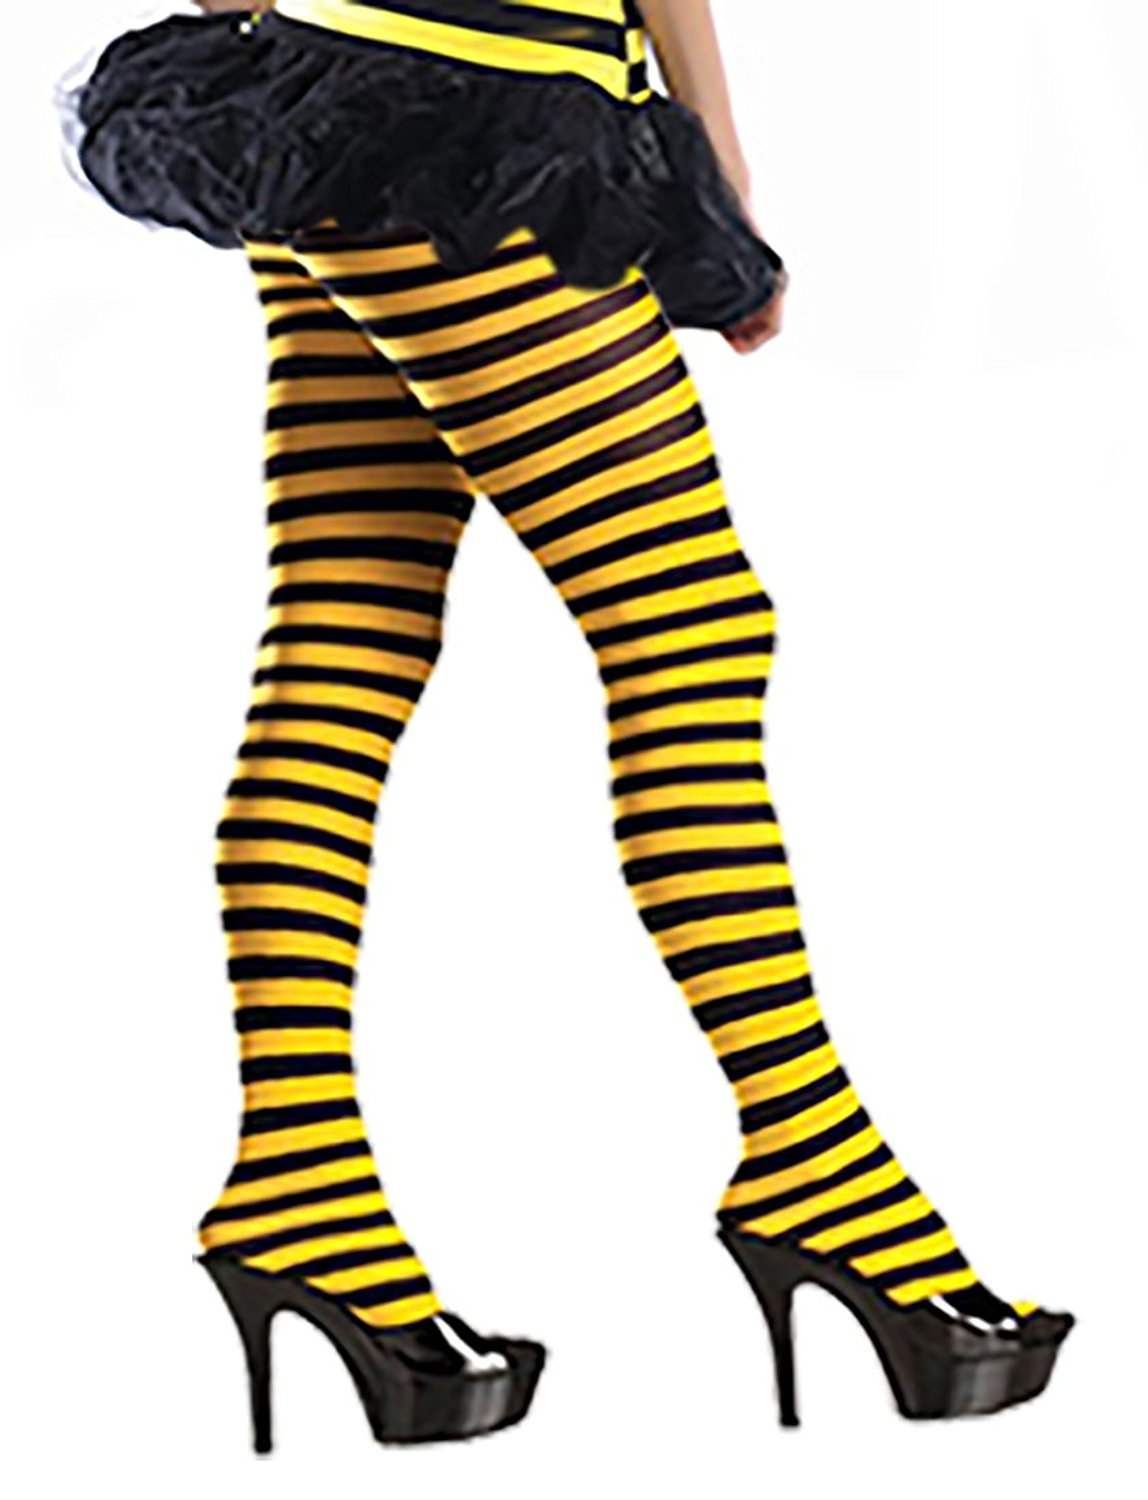 3ee405214 Get Quotations · Women s Bumblebee Tights Me Before You Yellow and Black  Striped Pantyhose Tights